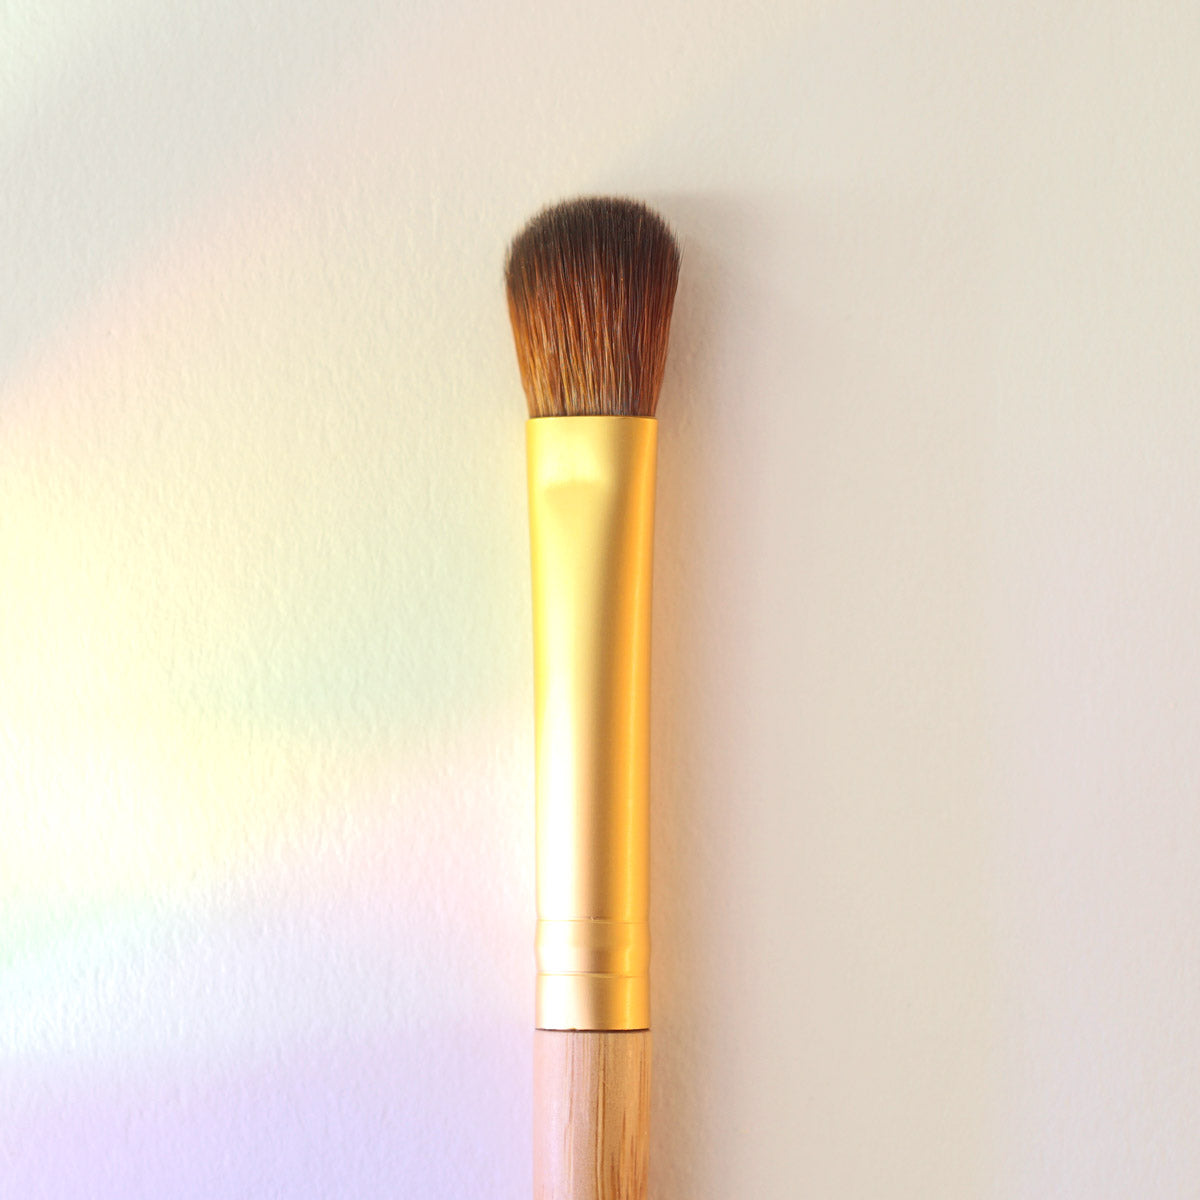 Blending Eyeshadow Vegan Brush